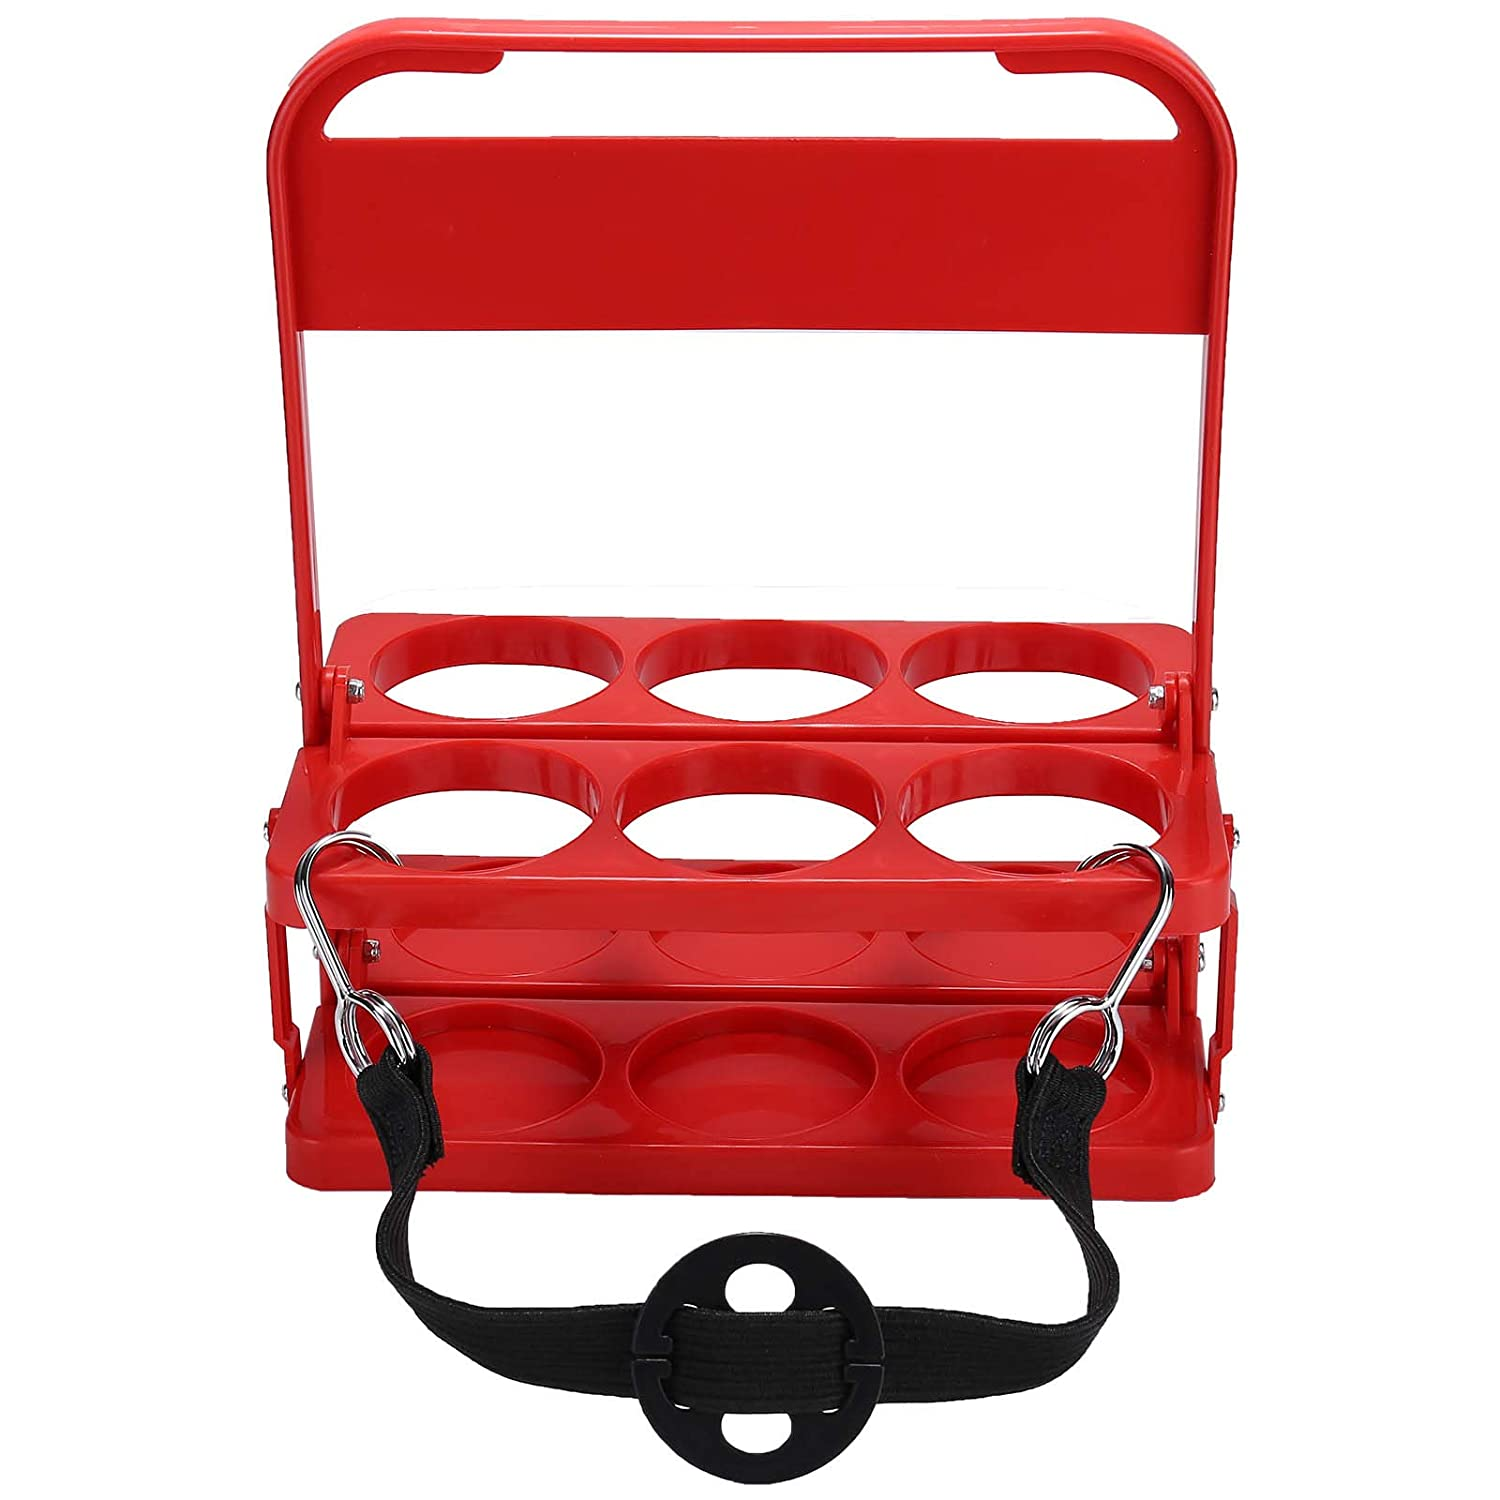 Foldable Plastic Drink Carrier, Beverage Delivery Holder, Ideal for Grubhub Doordash Instacart Postmates Uber Eats Drivers, Catering, Restaurant (Red)